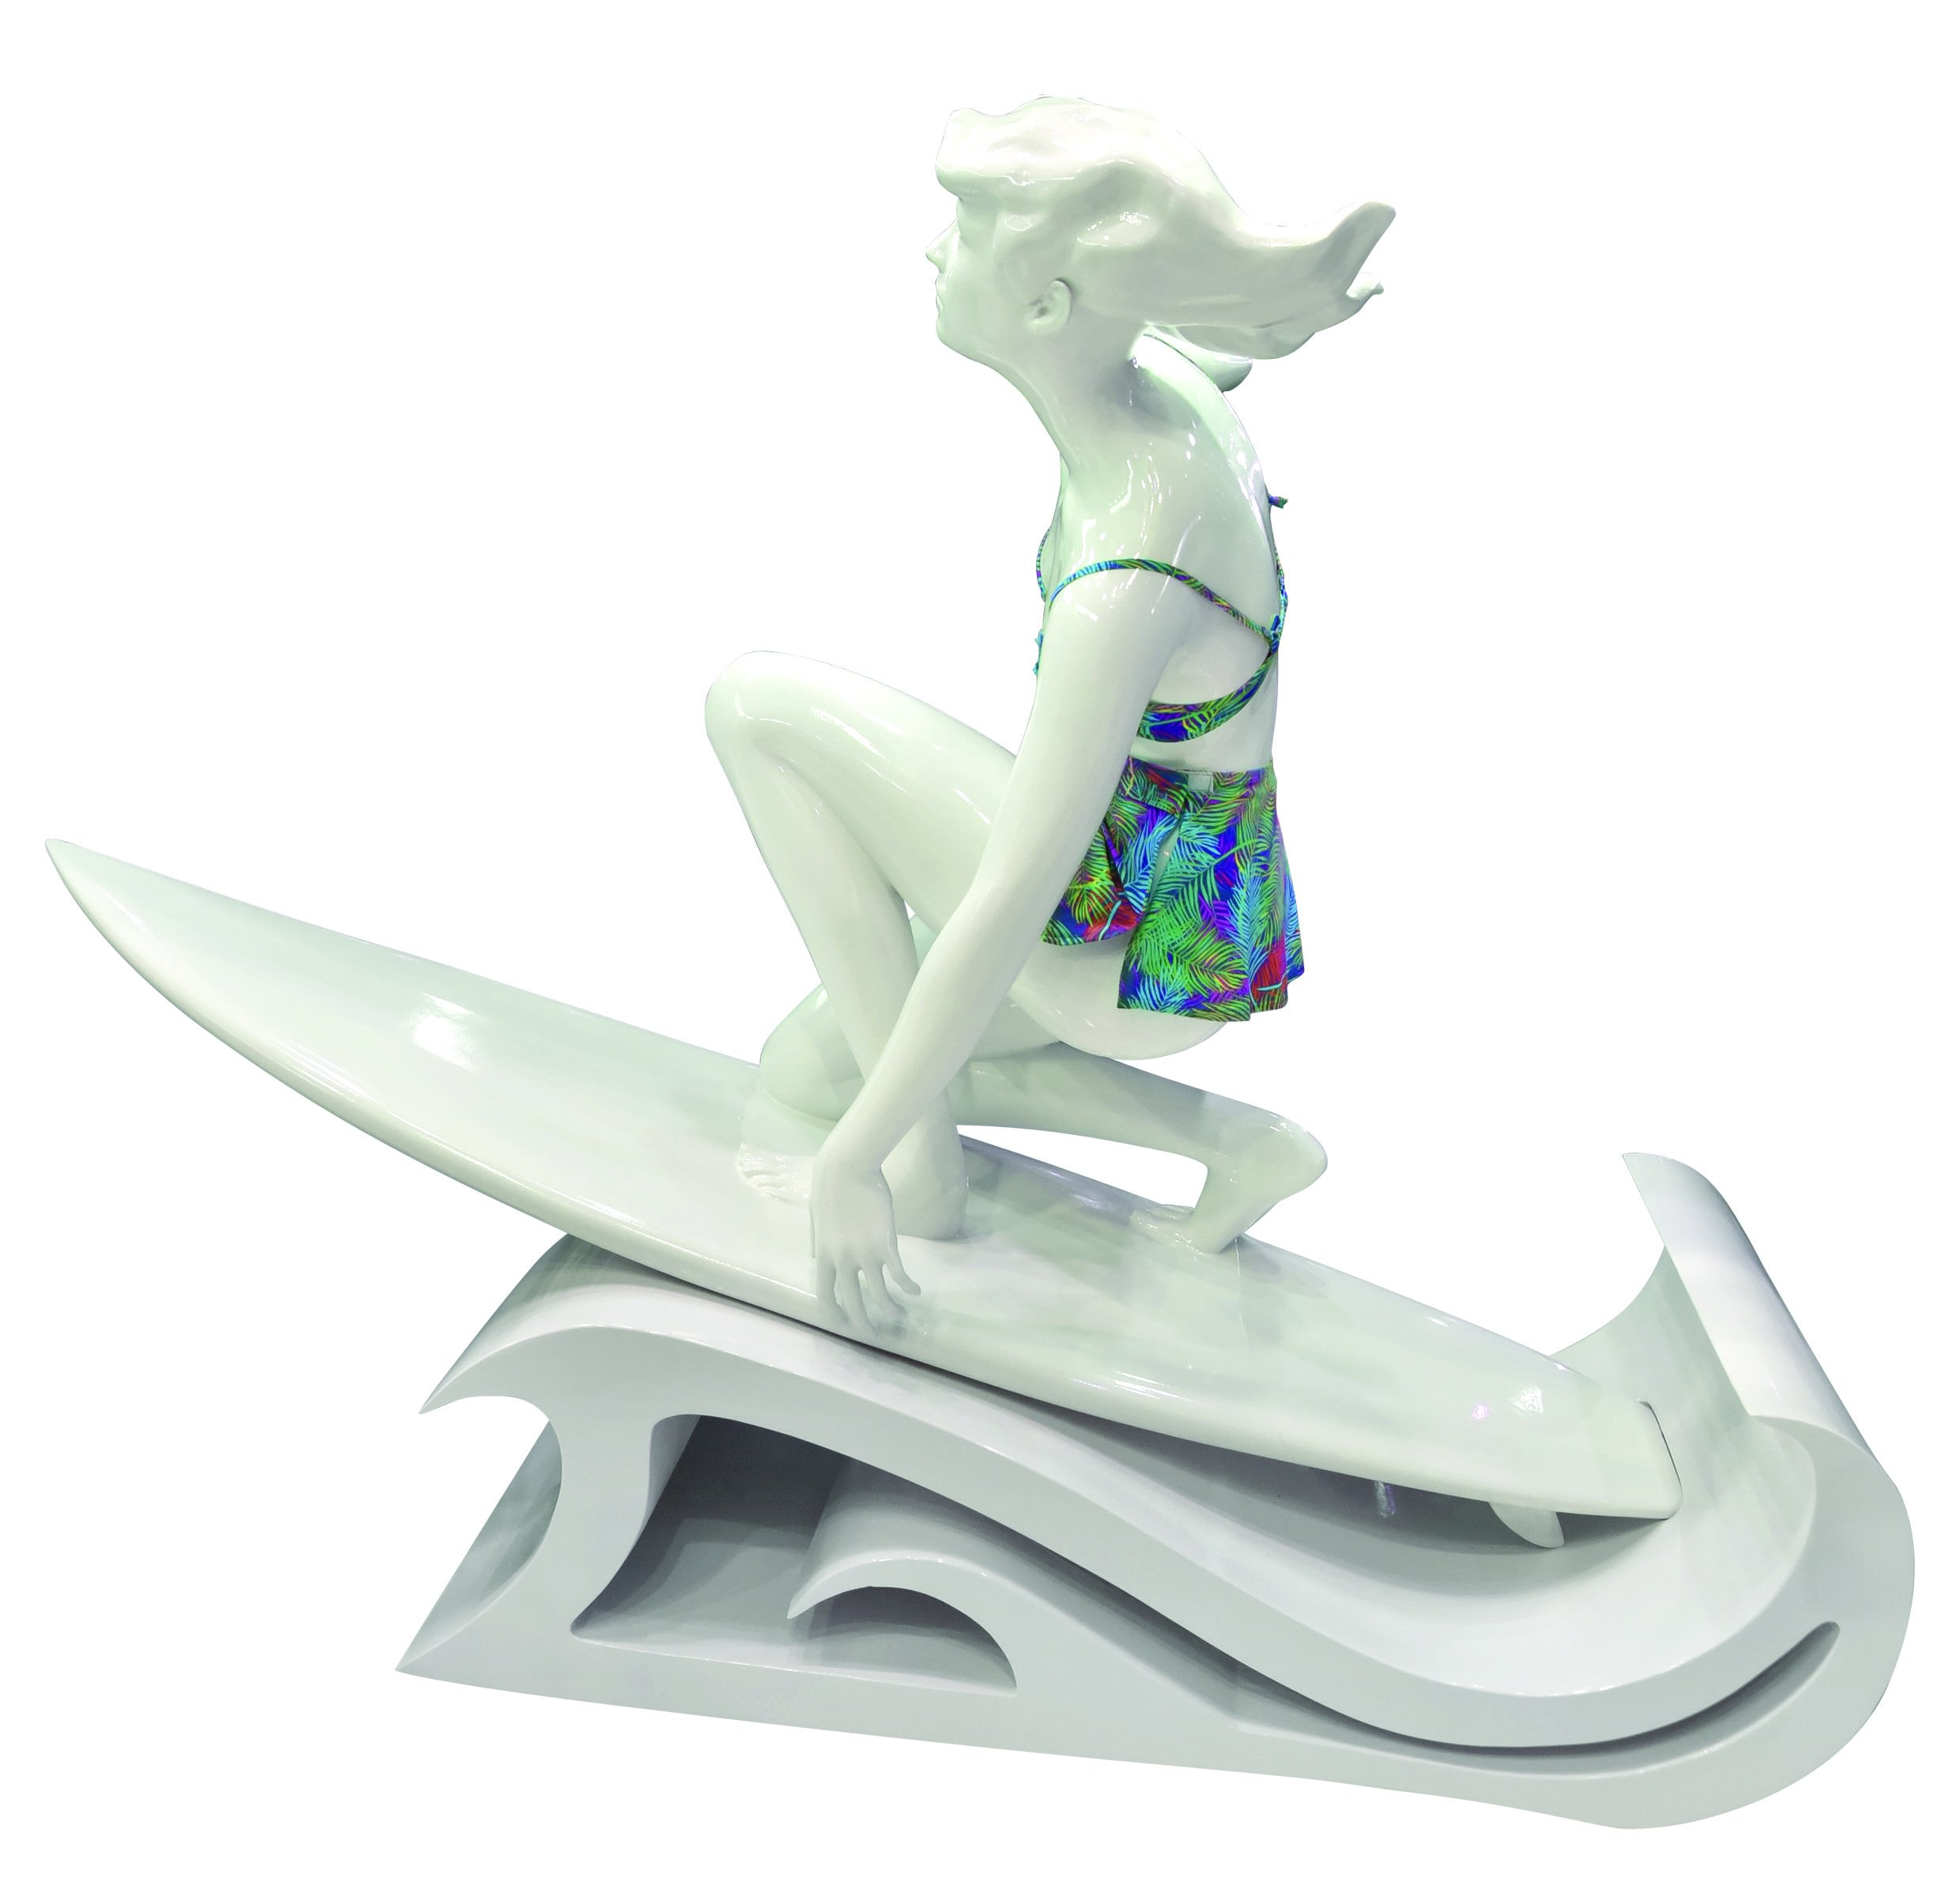 Surfing-Girl-3D-Printed-1